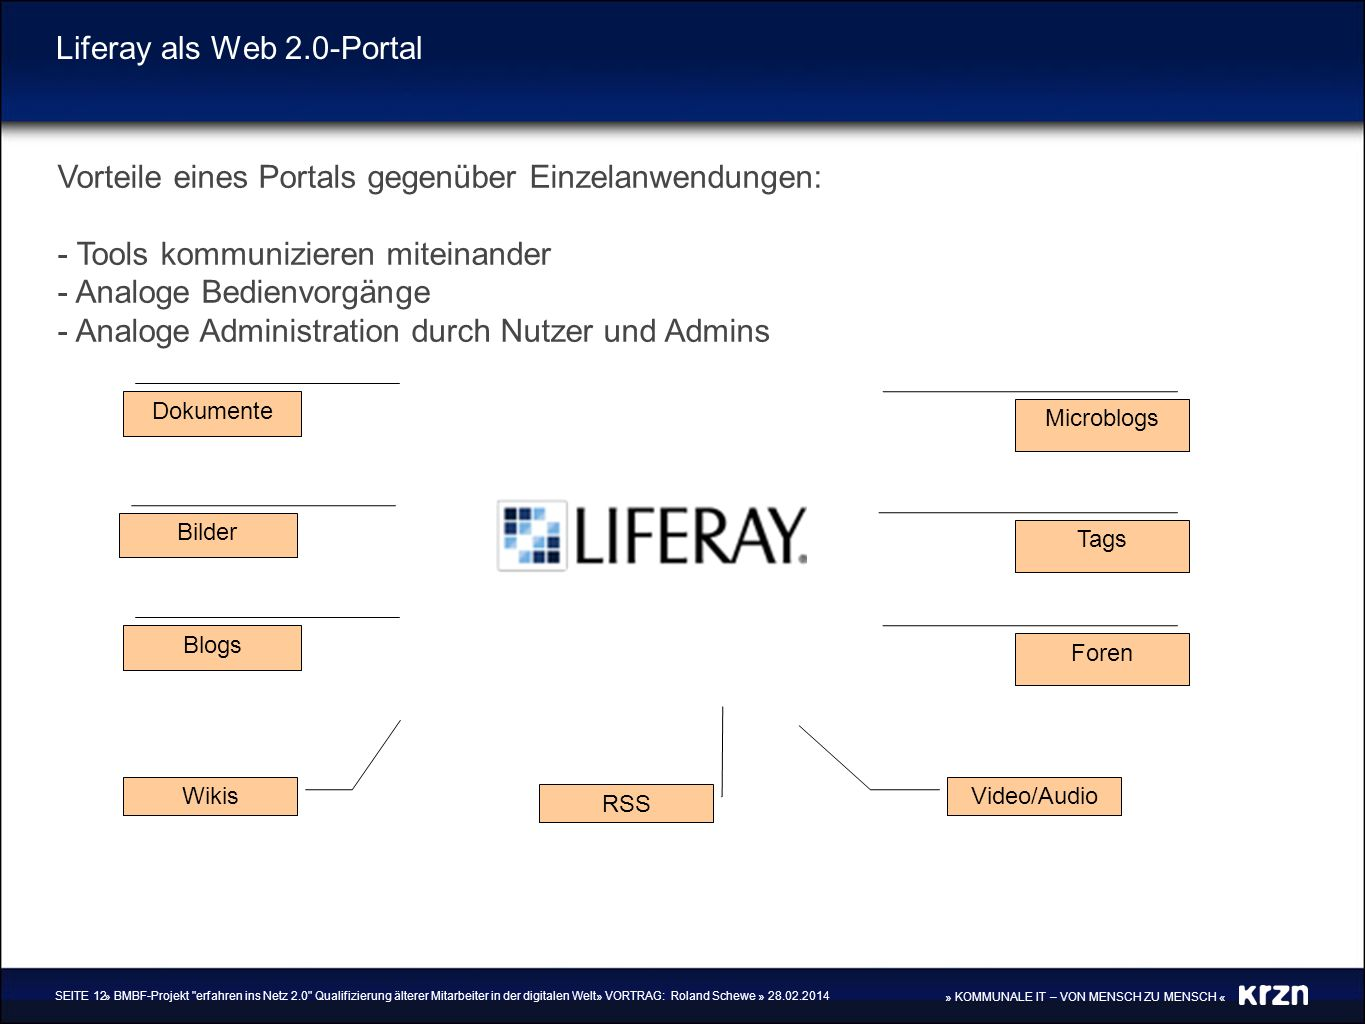 Liferay als Web 2.0-Portal